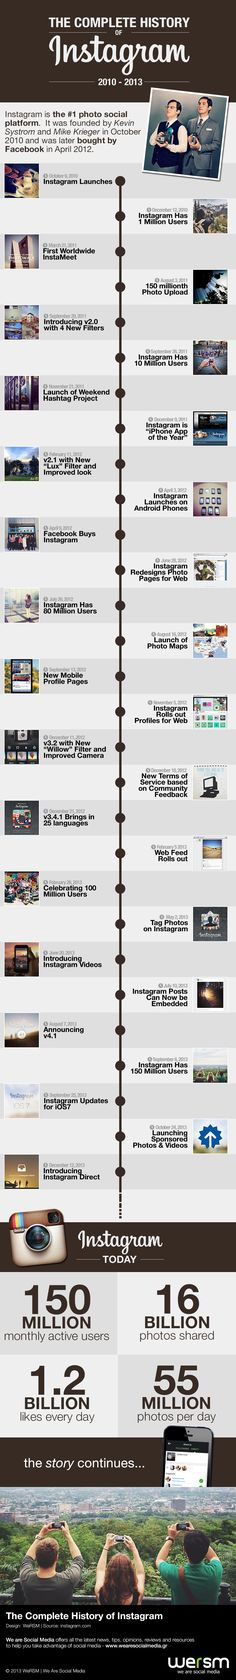 The Complete History of #Instagram - #infographic #socialmedia